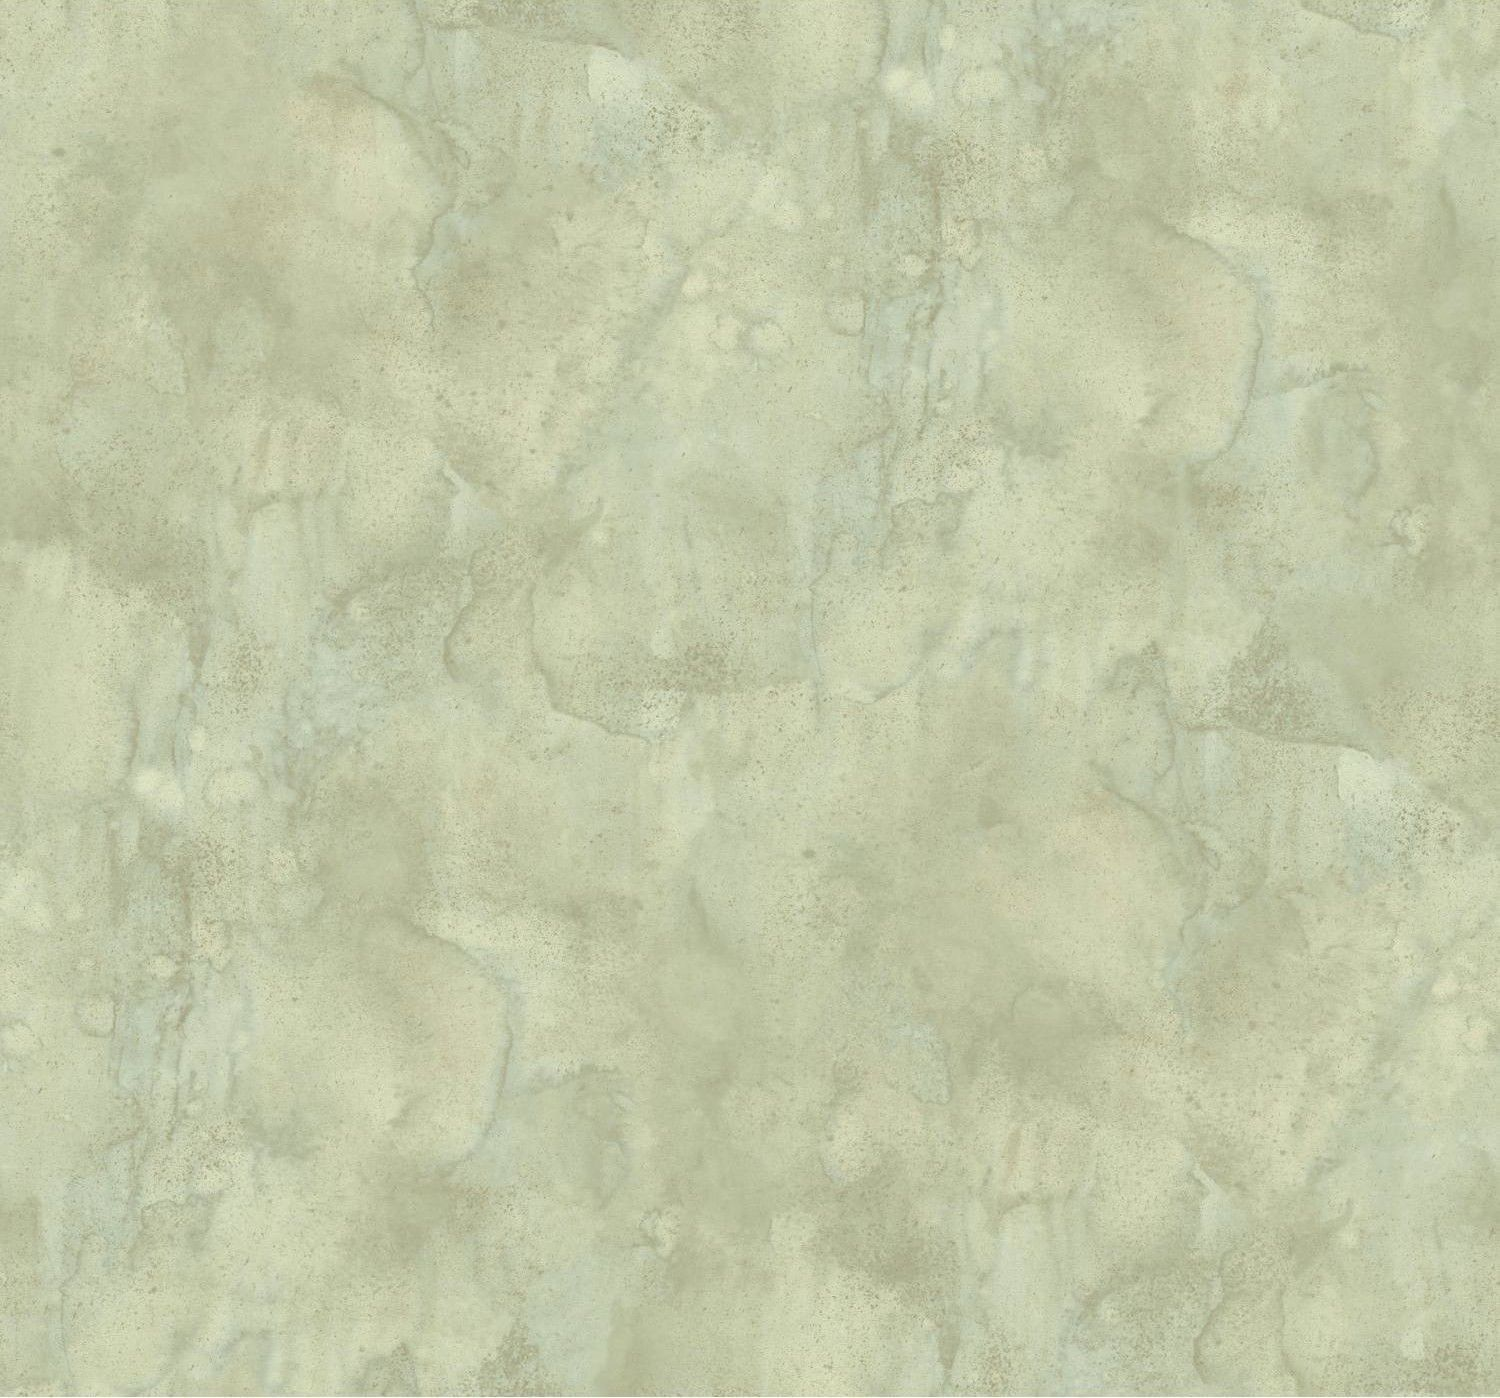 Top Wallpaper Marble Cream - 7a29cce6a7daecca190af2dde9b1f872  Best Photo Reference_889743.jpg